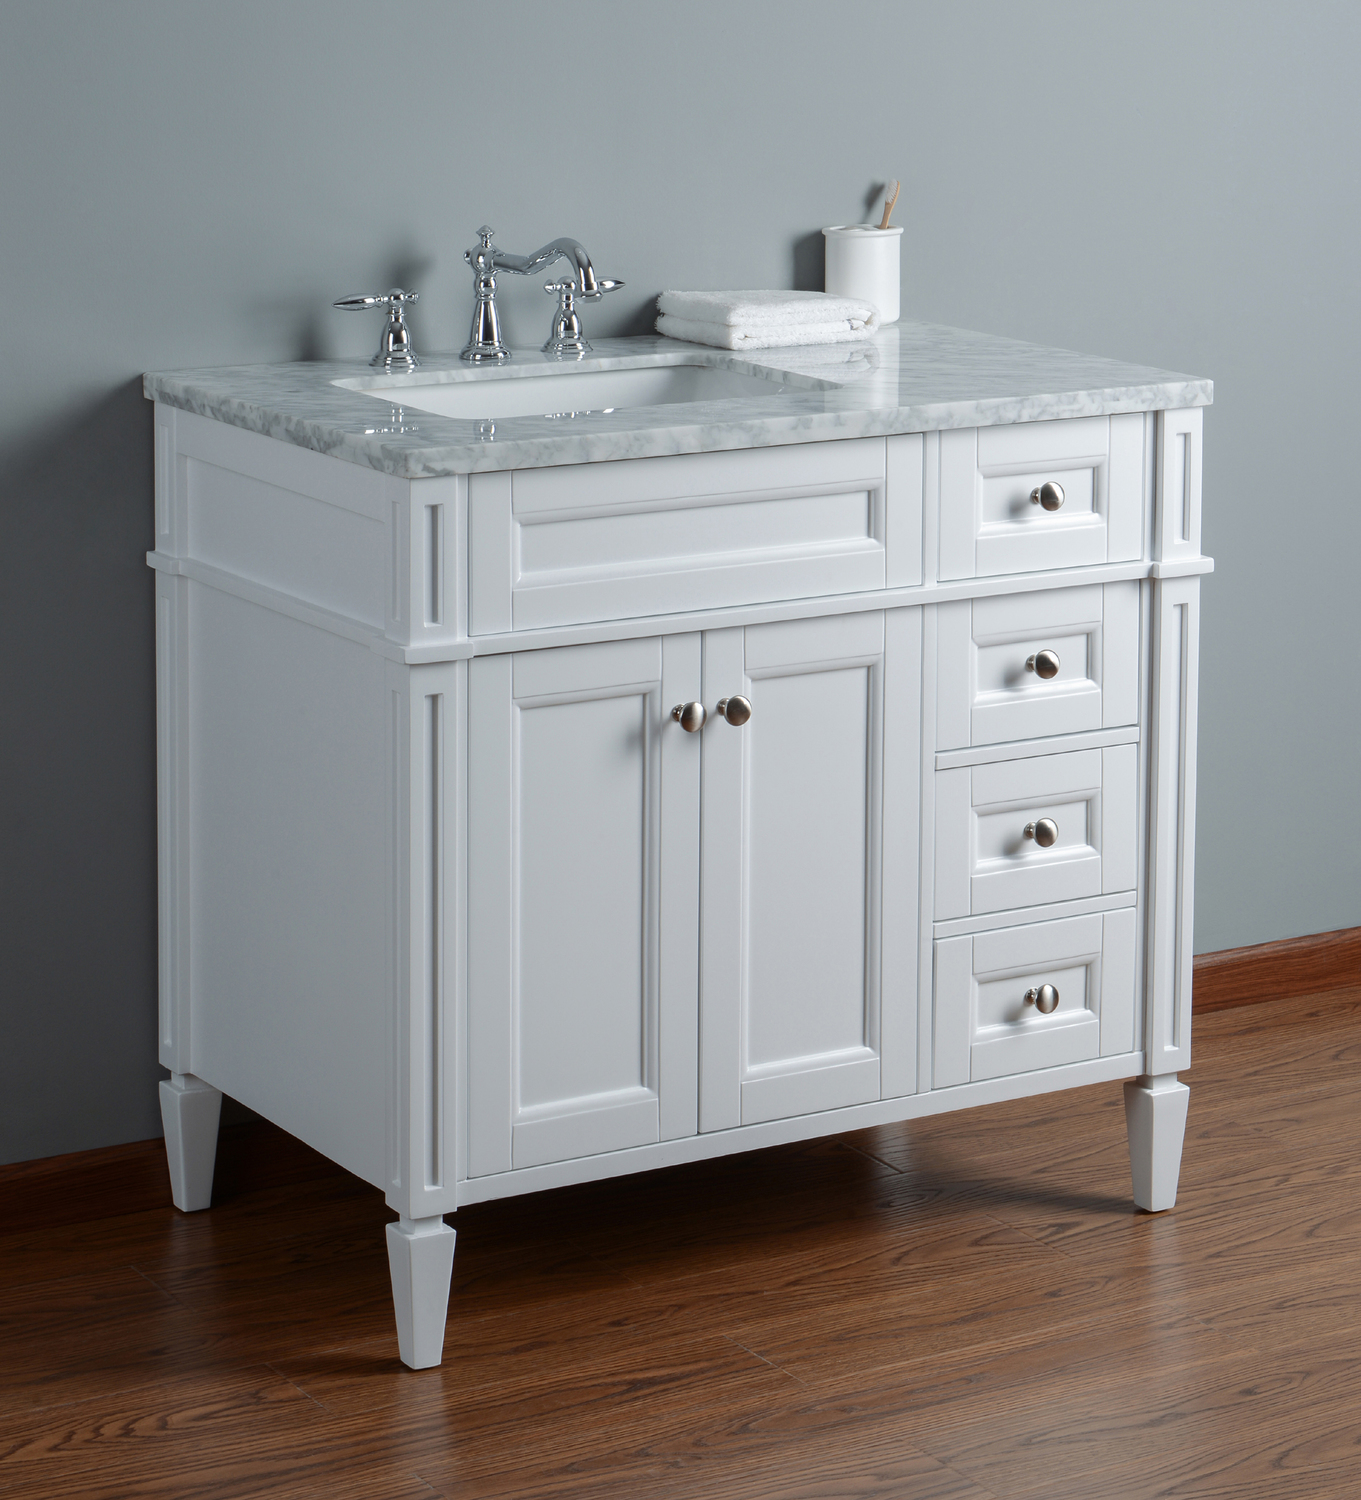 Best Deal - Stufurhome Anastasia French 36 Inches White Single Sink ...